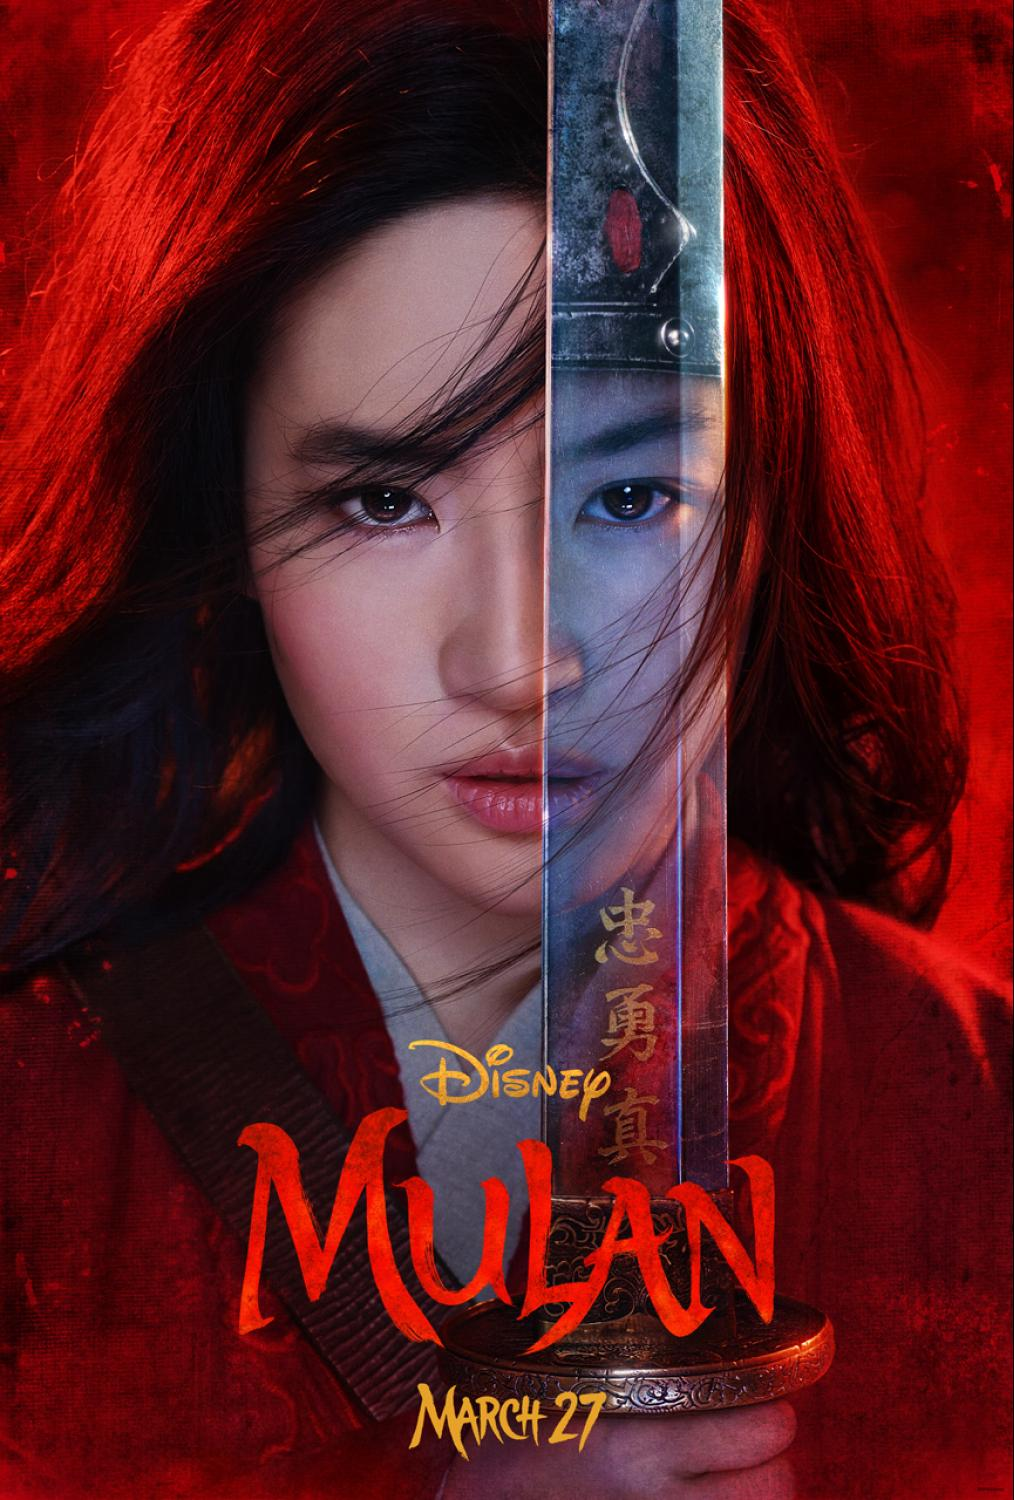 Mulan Disney movie